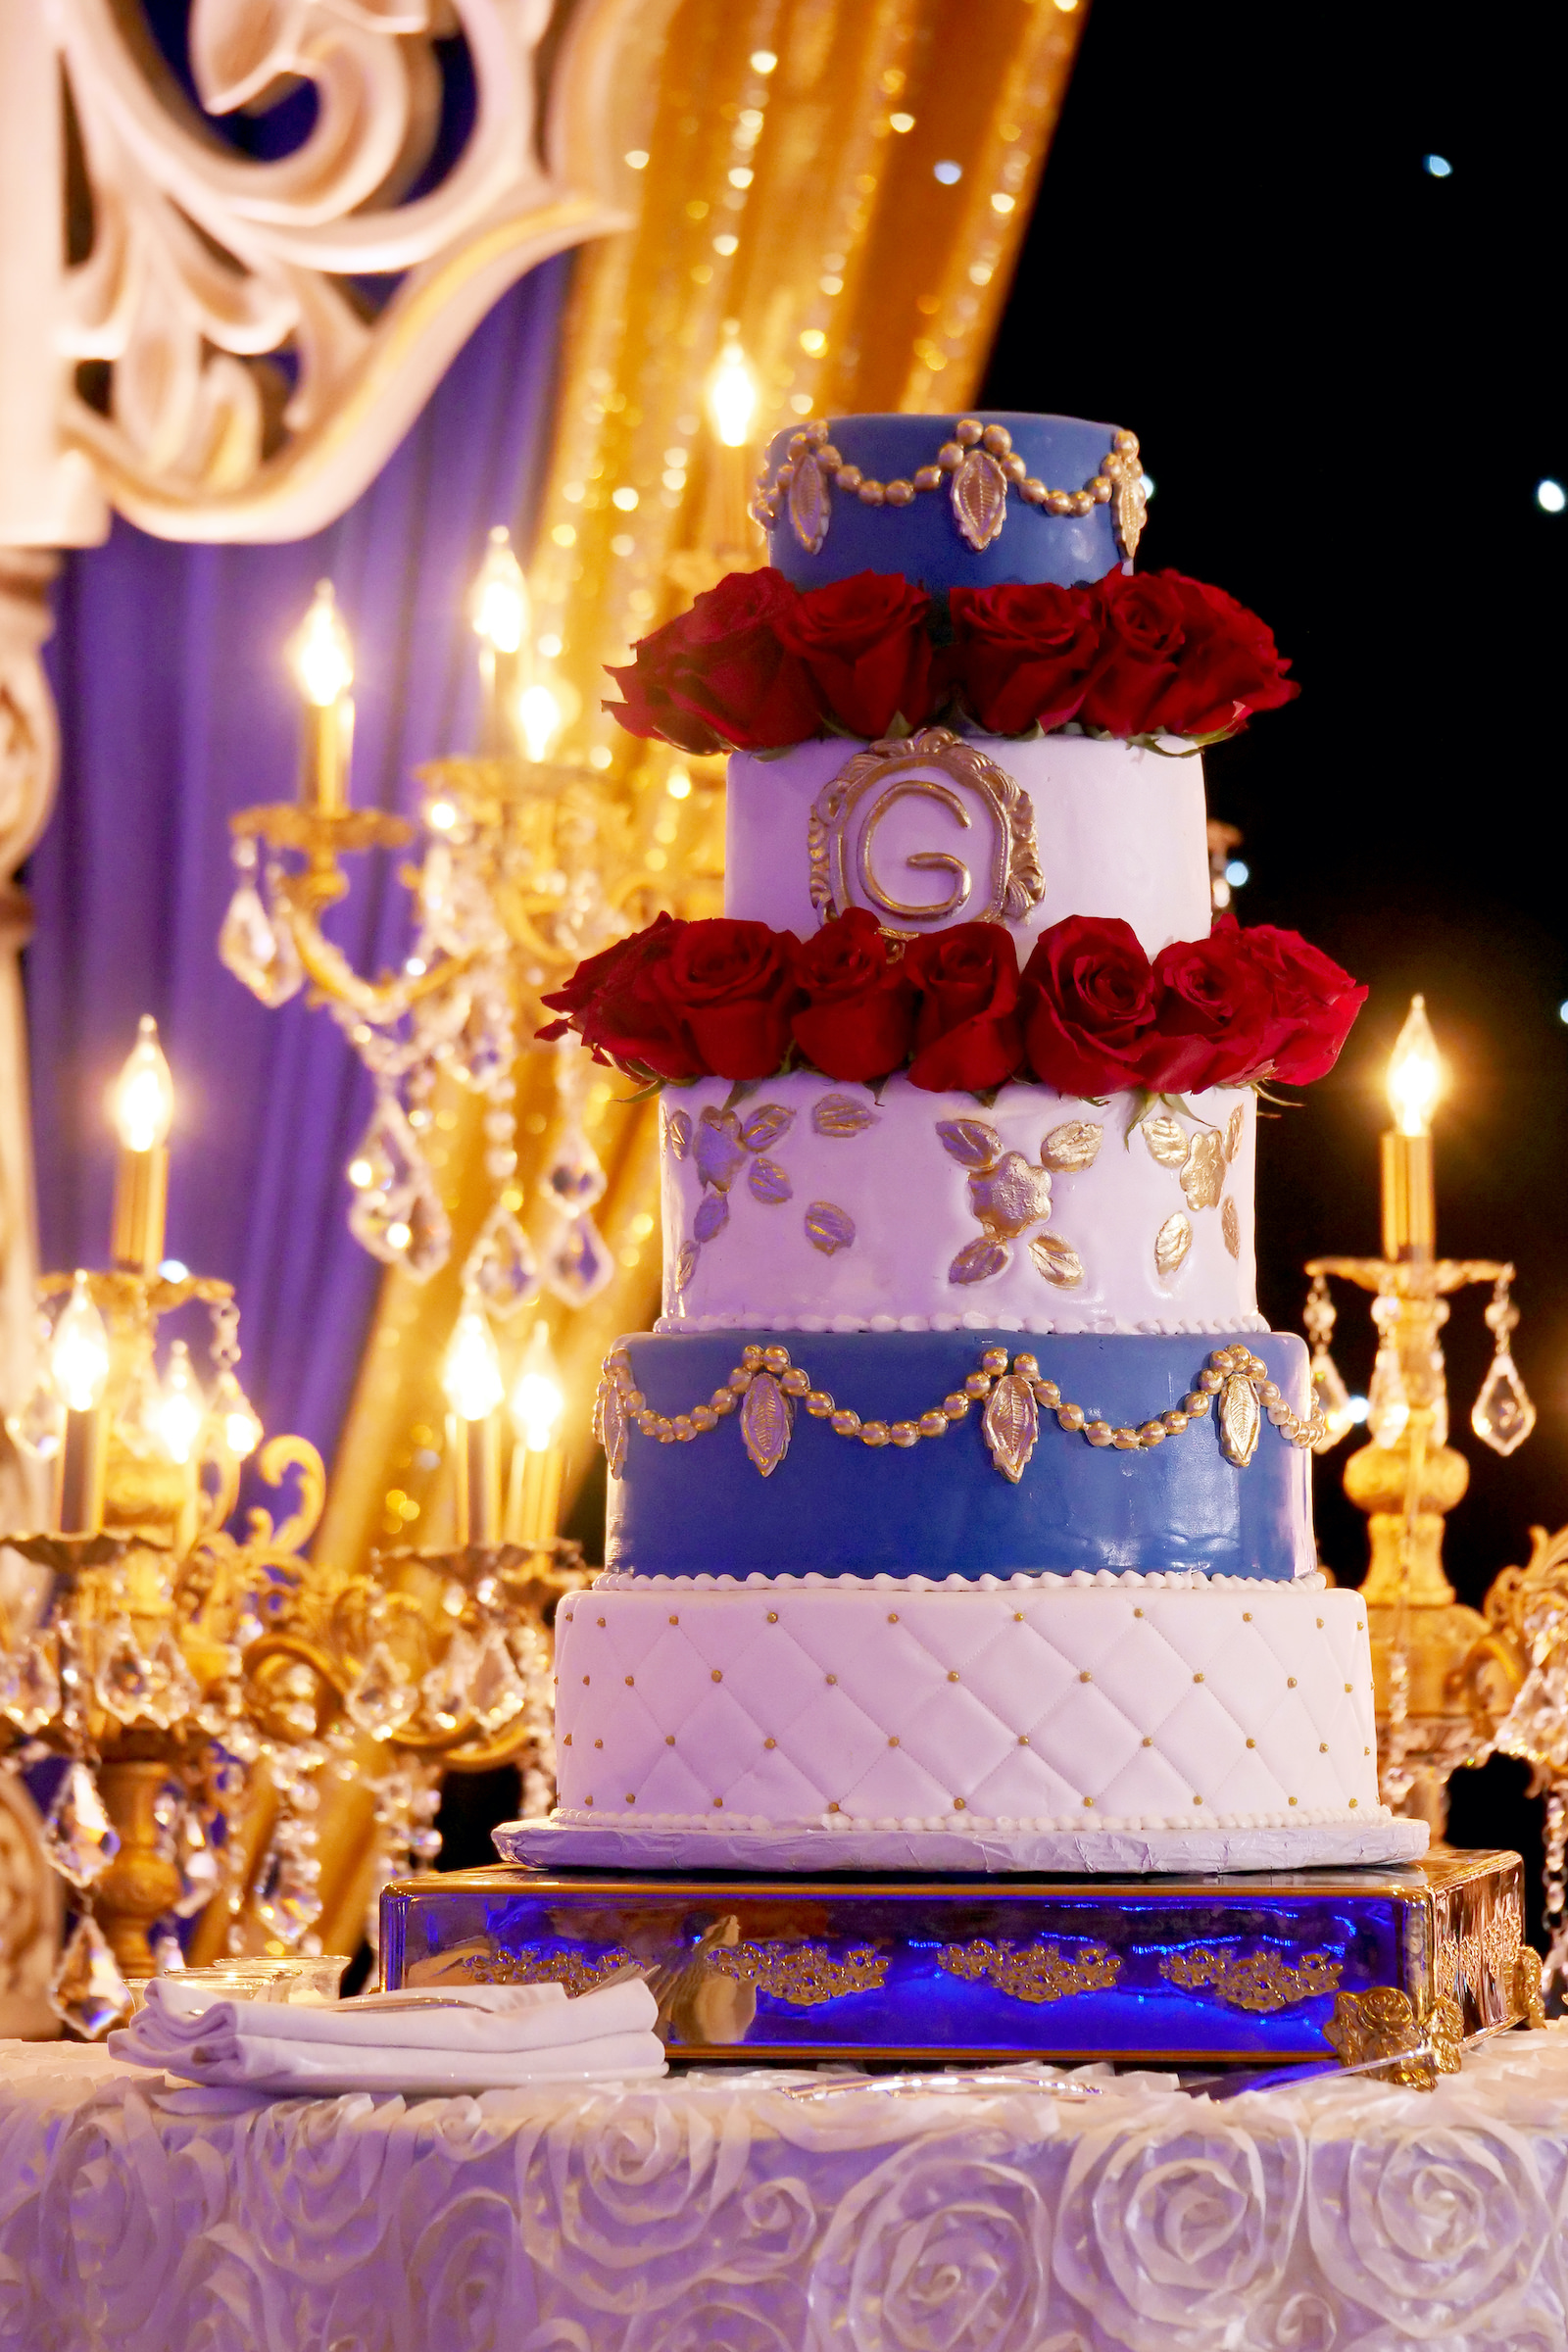 Five Tier Fondant Indian Wedding Cake with Gold Monogram and Quilting accented with Red Roses on a Gold Cake Stand